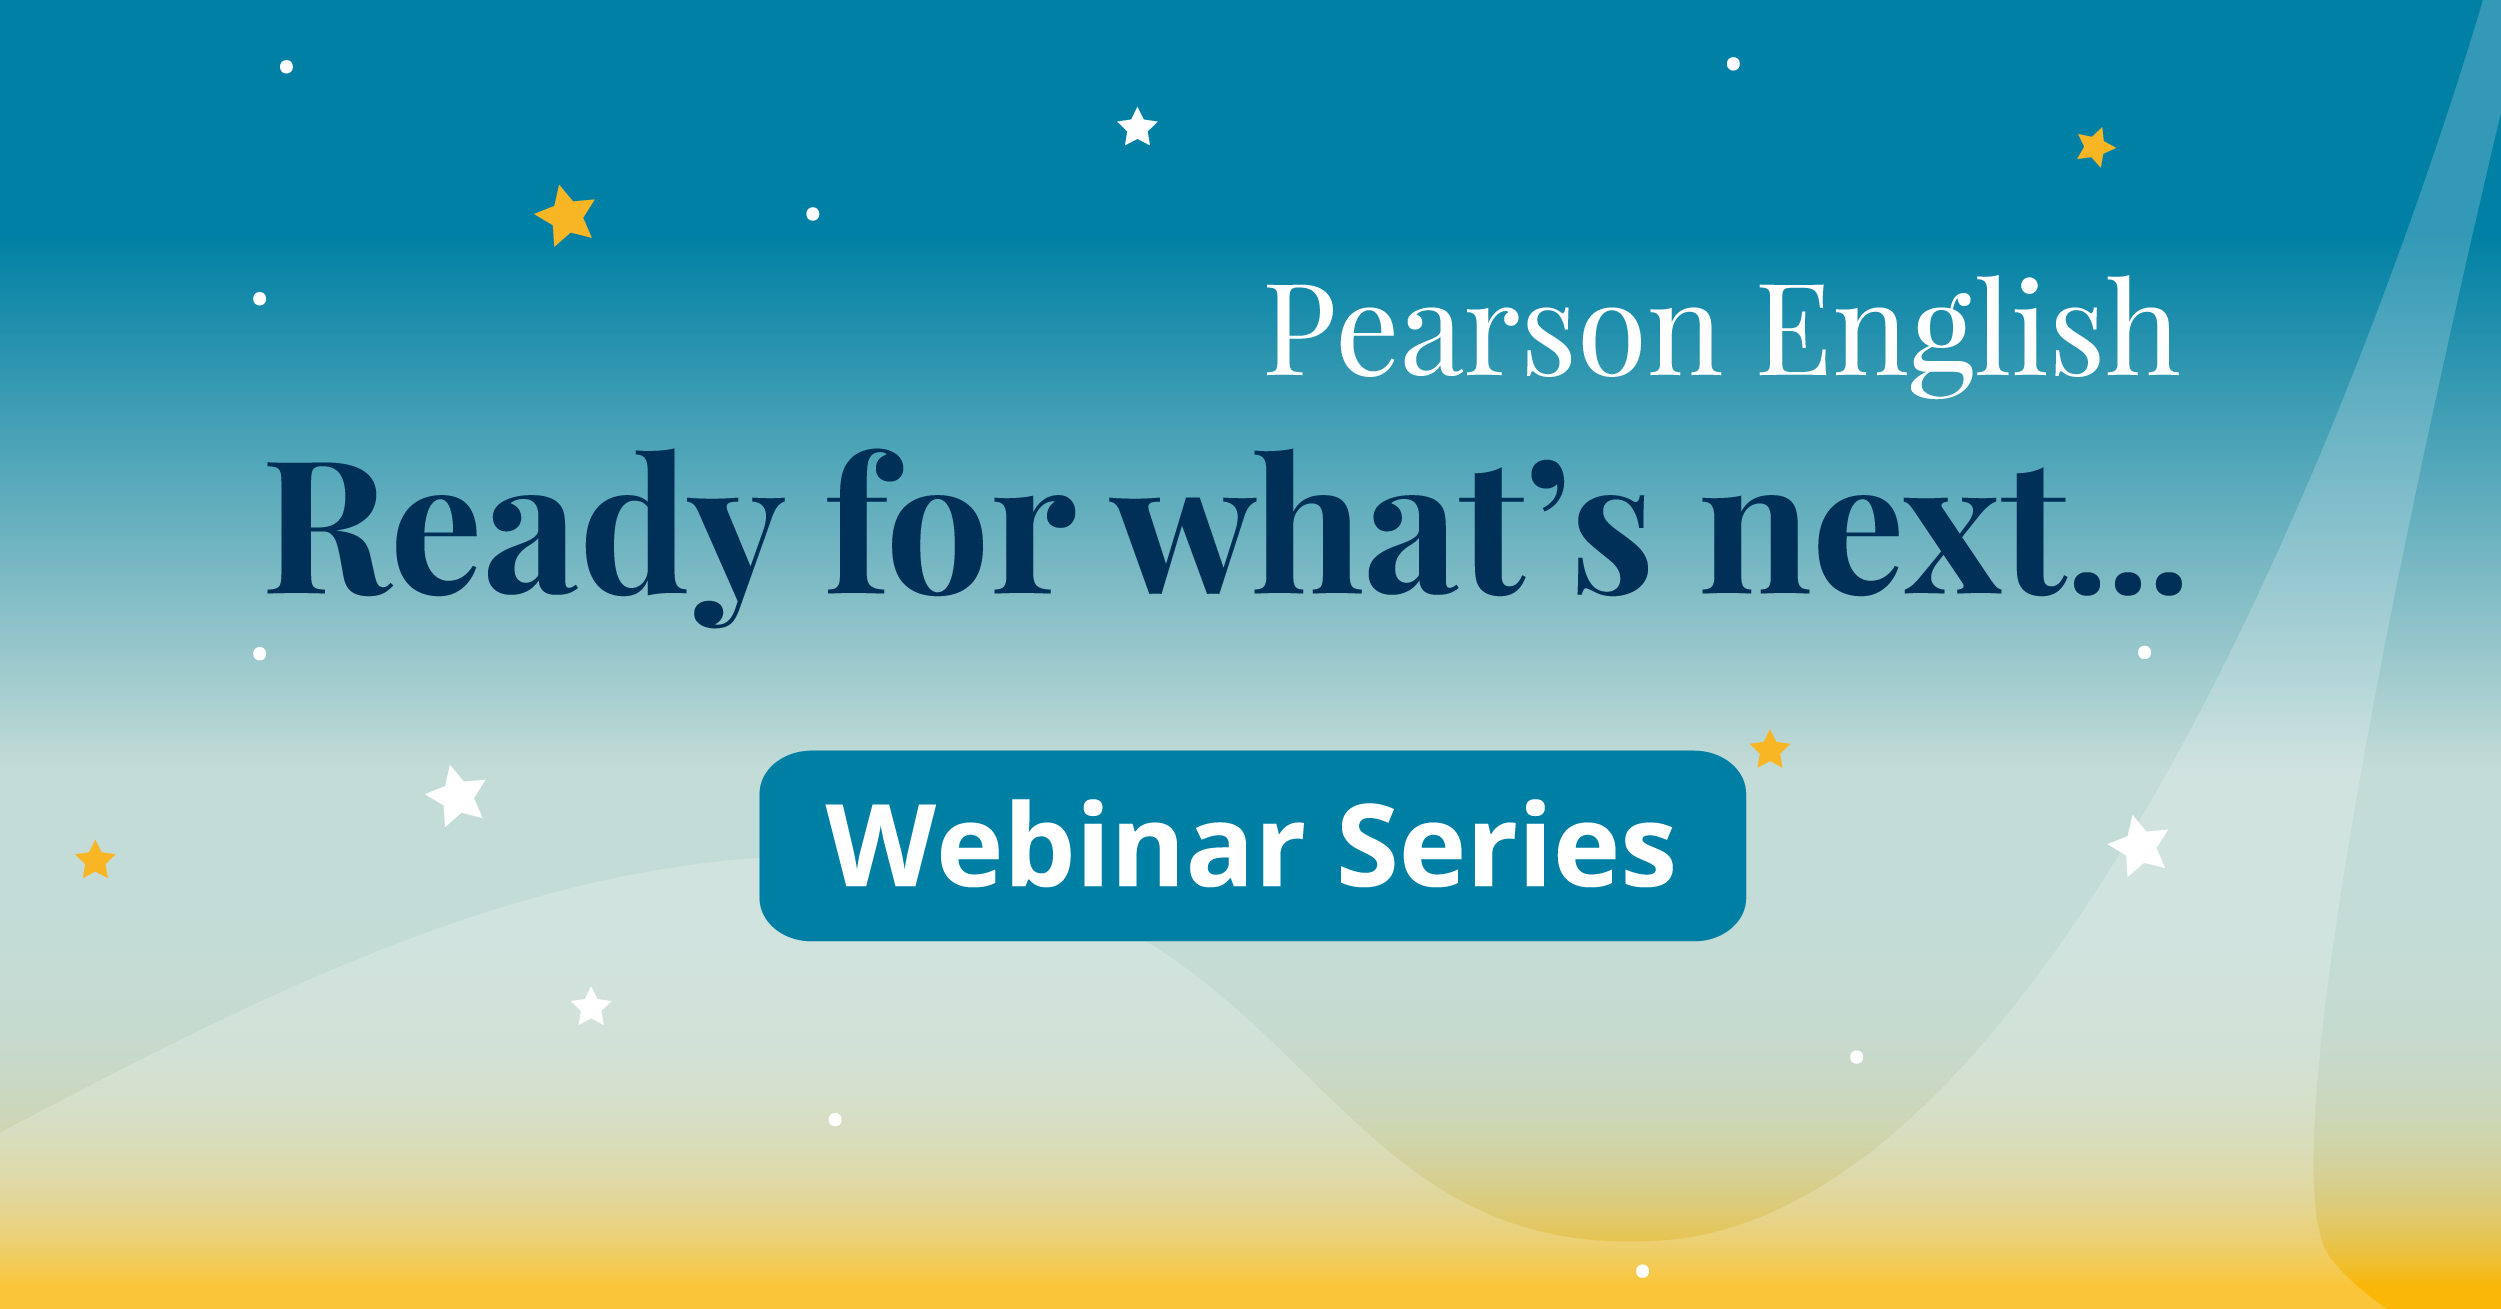 Ready for what's next webinar series banner image on starry background